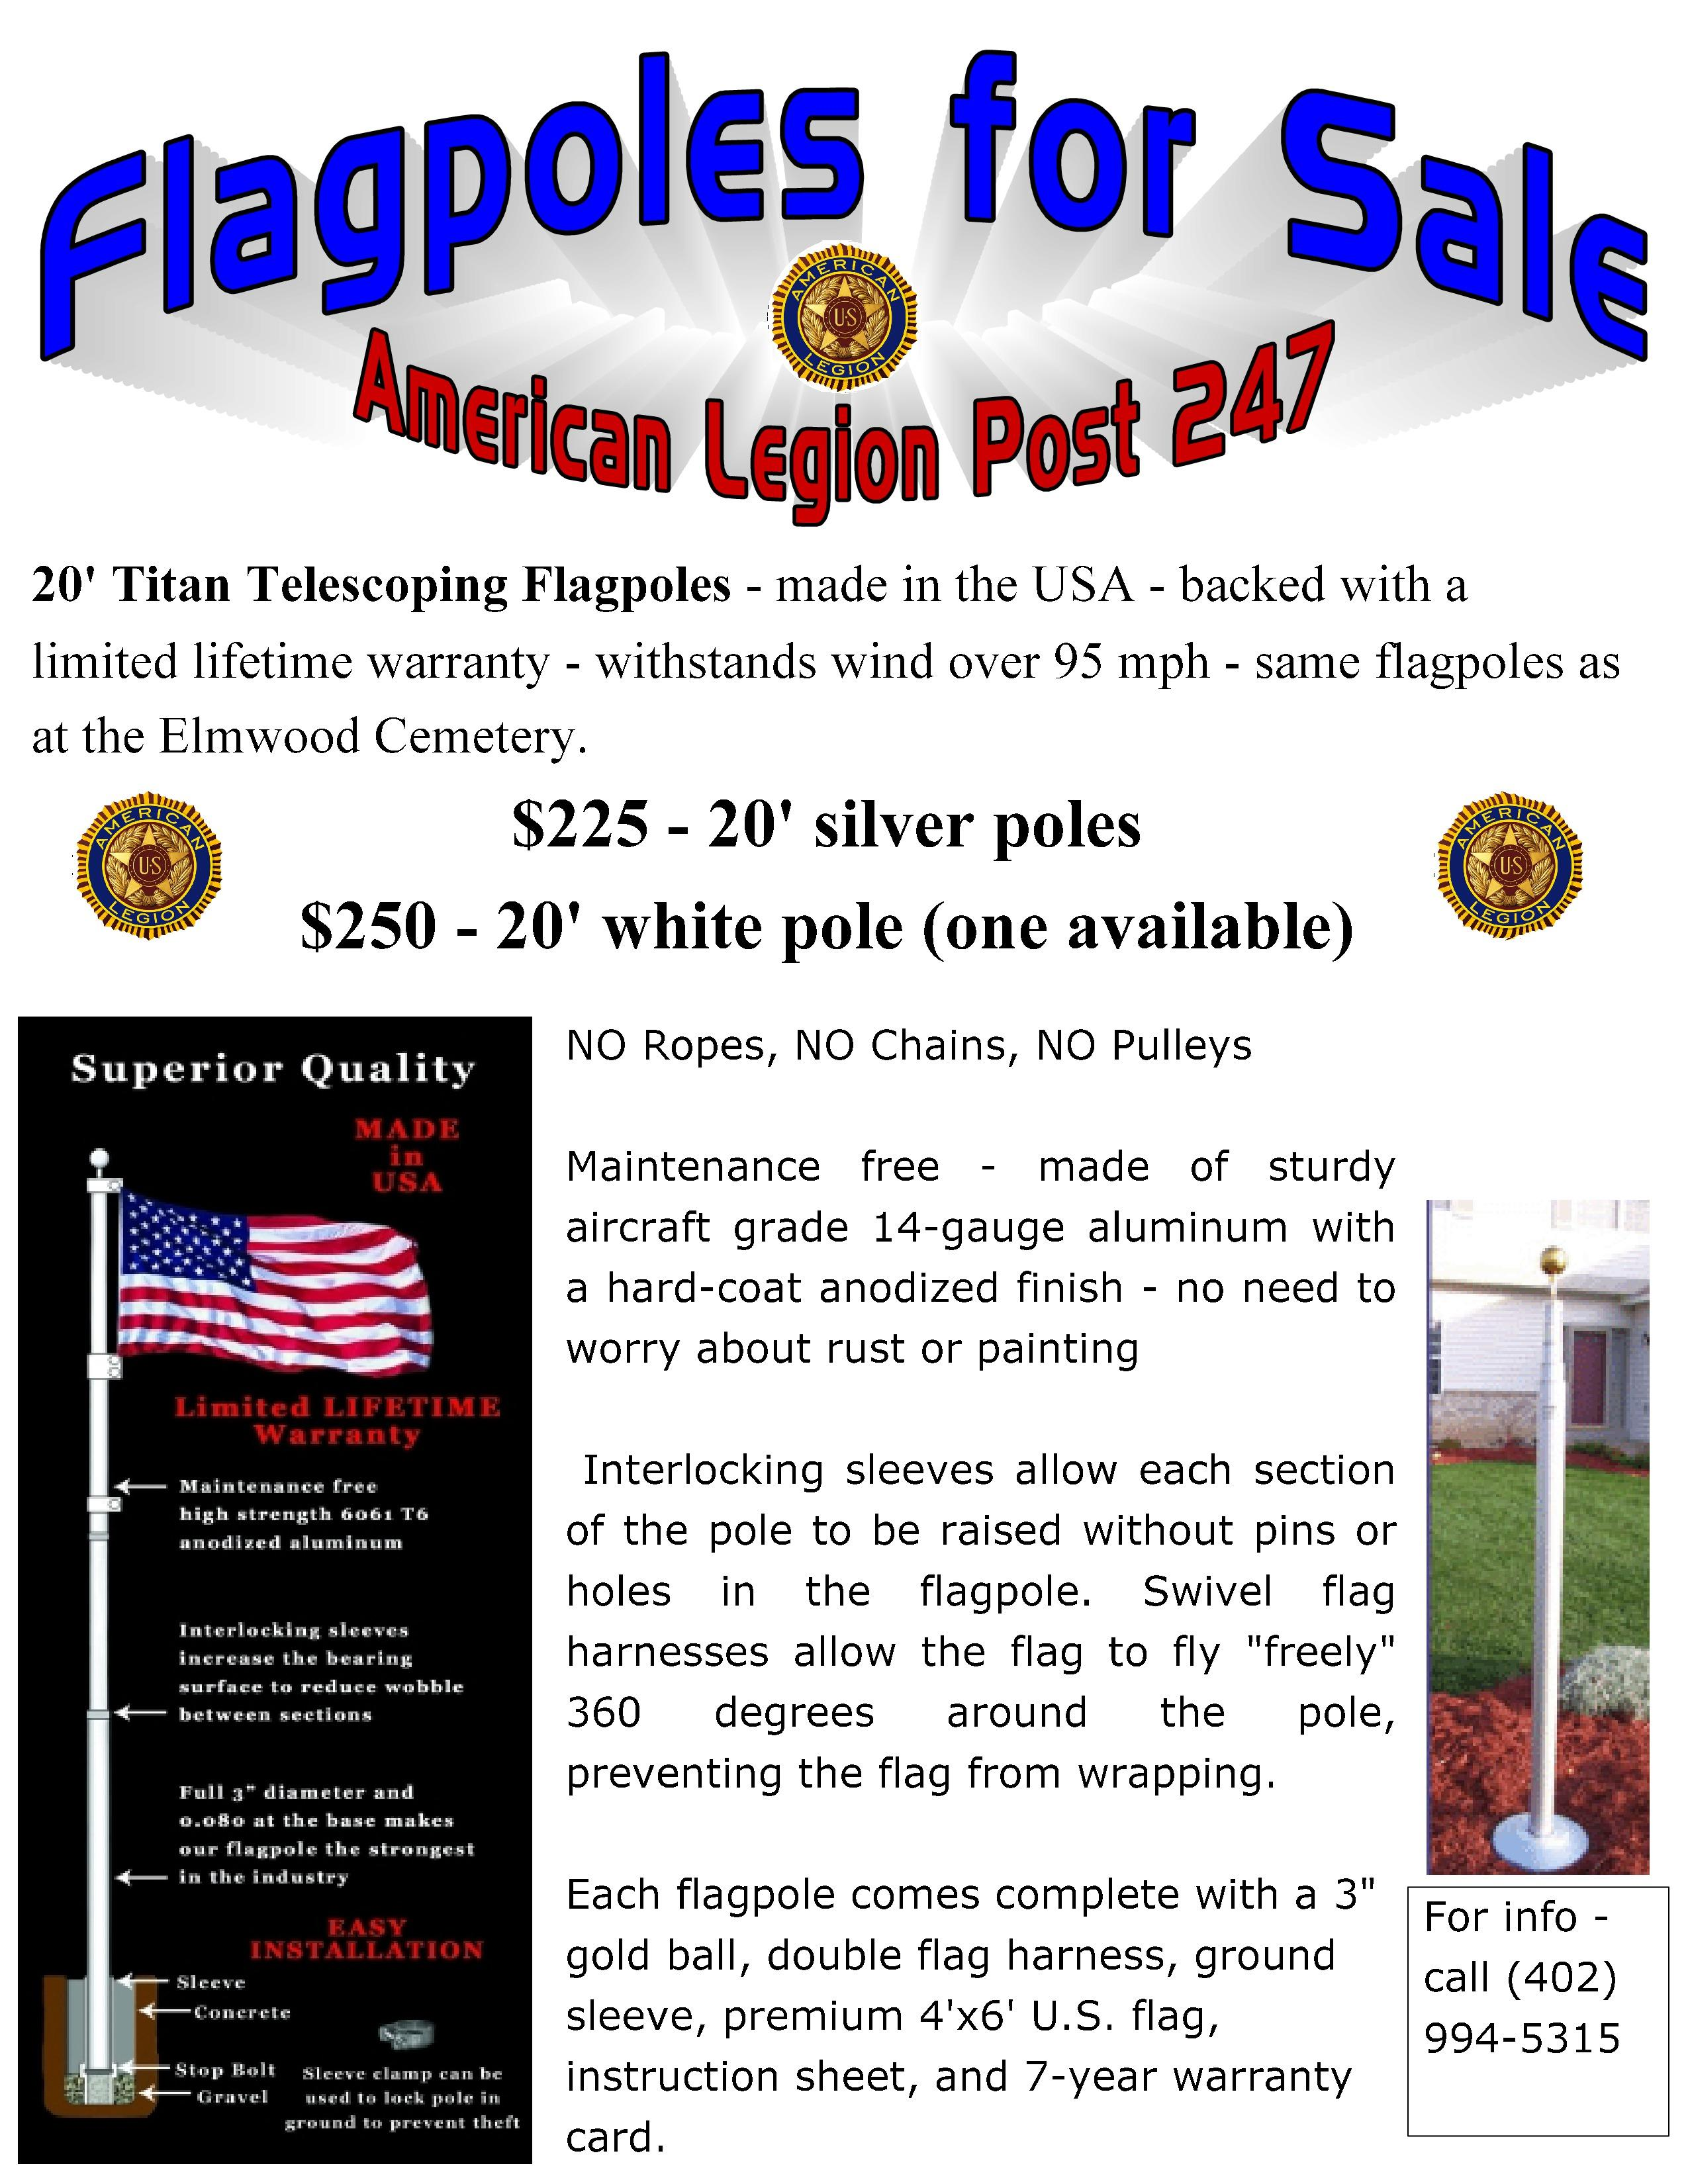 Flagpoles for sale Aug 2016 page 0